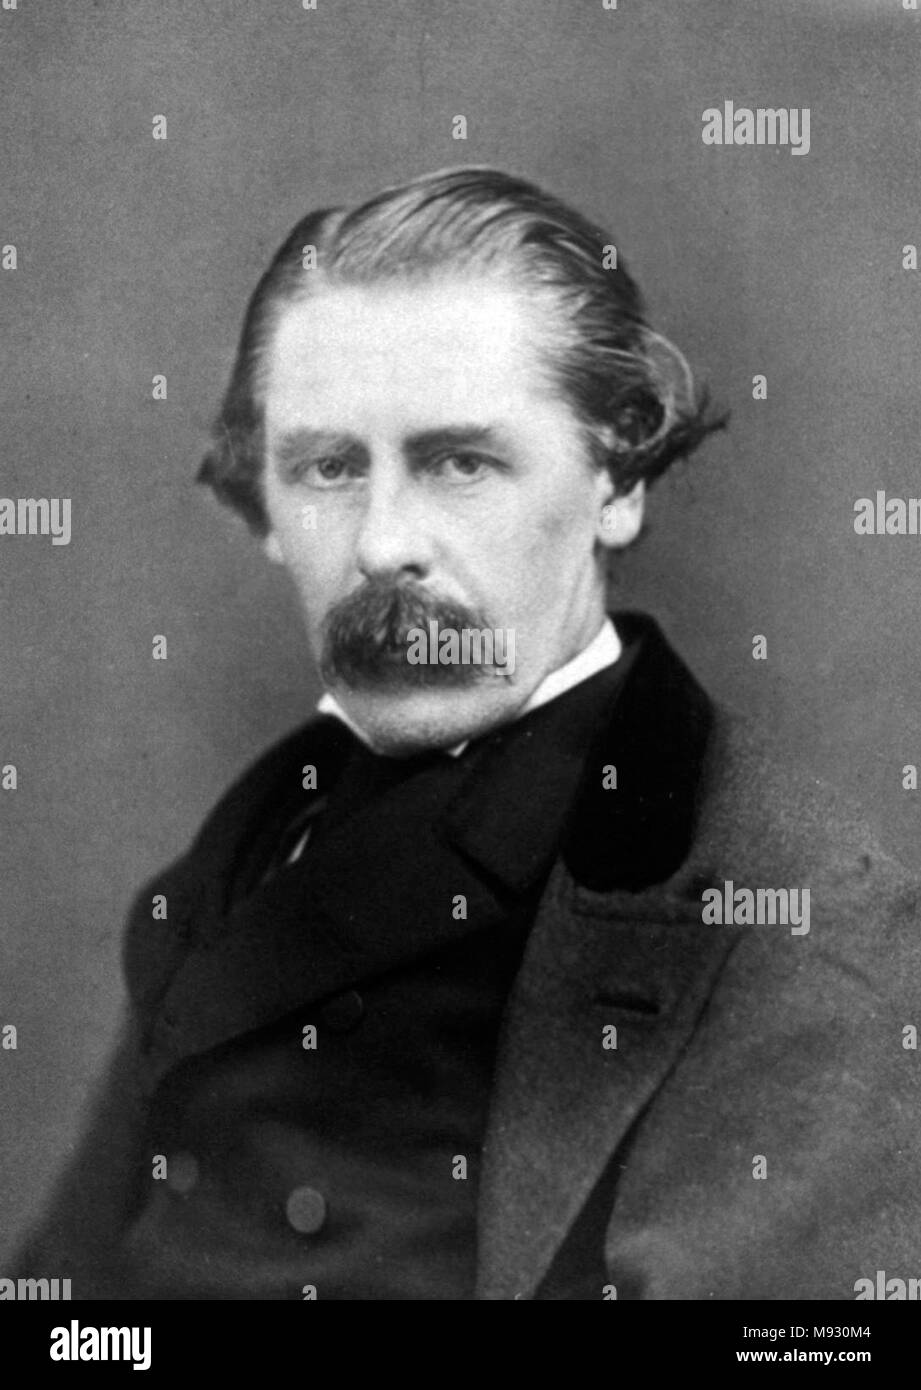 Sir Henry Thompson, 1st Baronet, (1820 – 1904) British surgeon and polymath - Stock Image